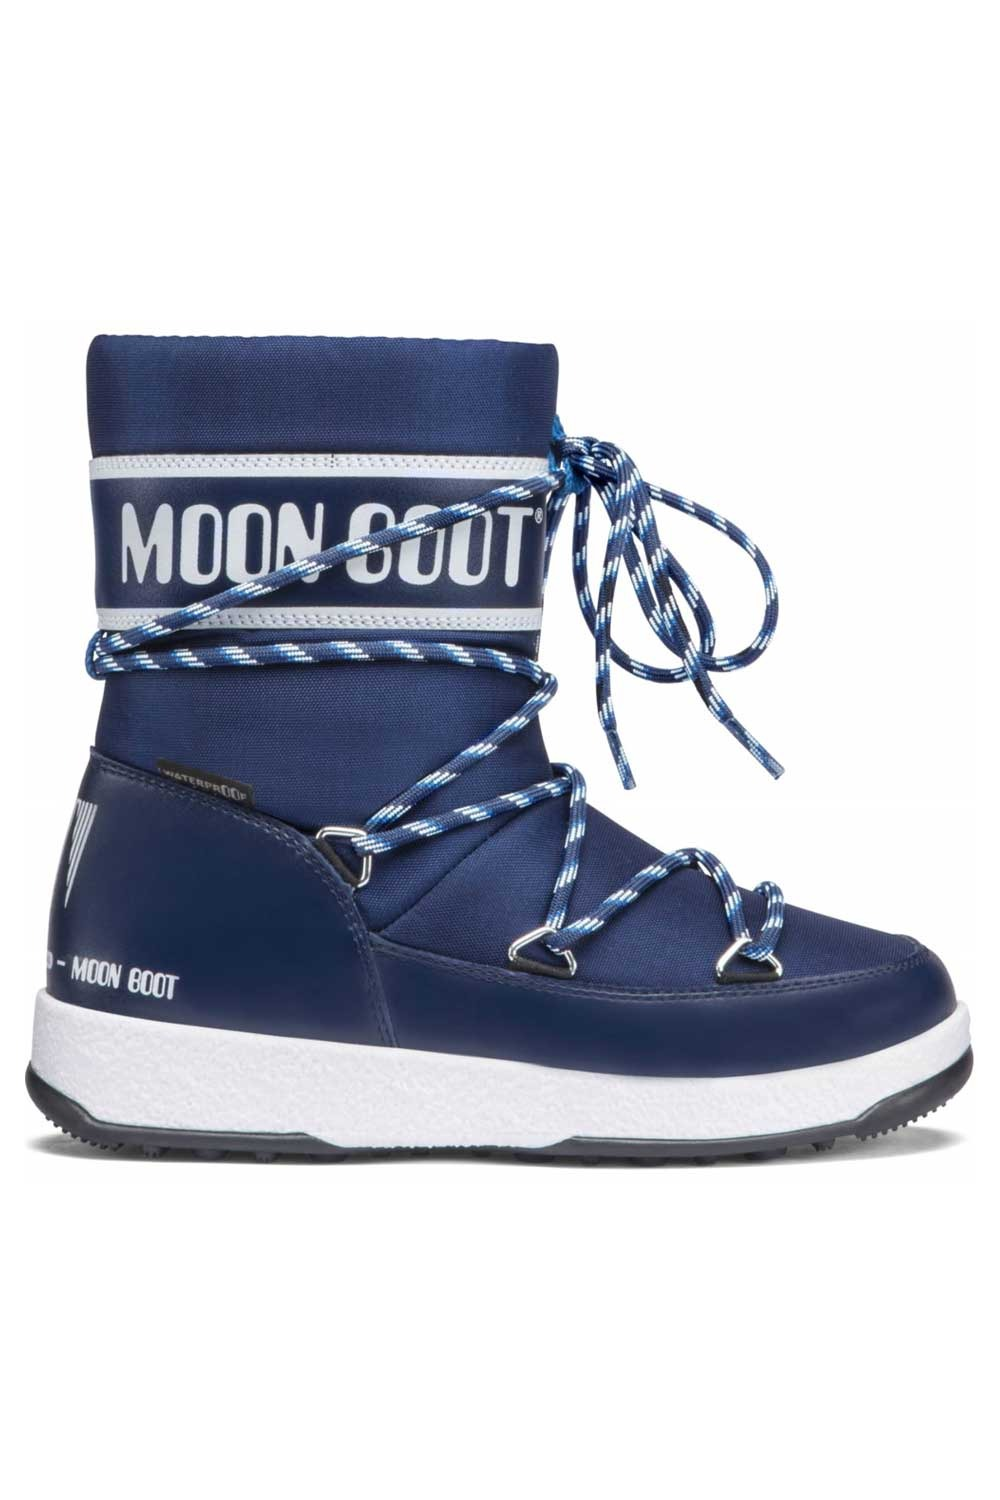 문부츠 키즈 방한부츠 JR 보이 스포츠 WP_MOONBOOT YOUTH MOON BOOT JR BOY SPORT WP_BLUE NAVY_VMQ855BU_AVMQ855BU